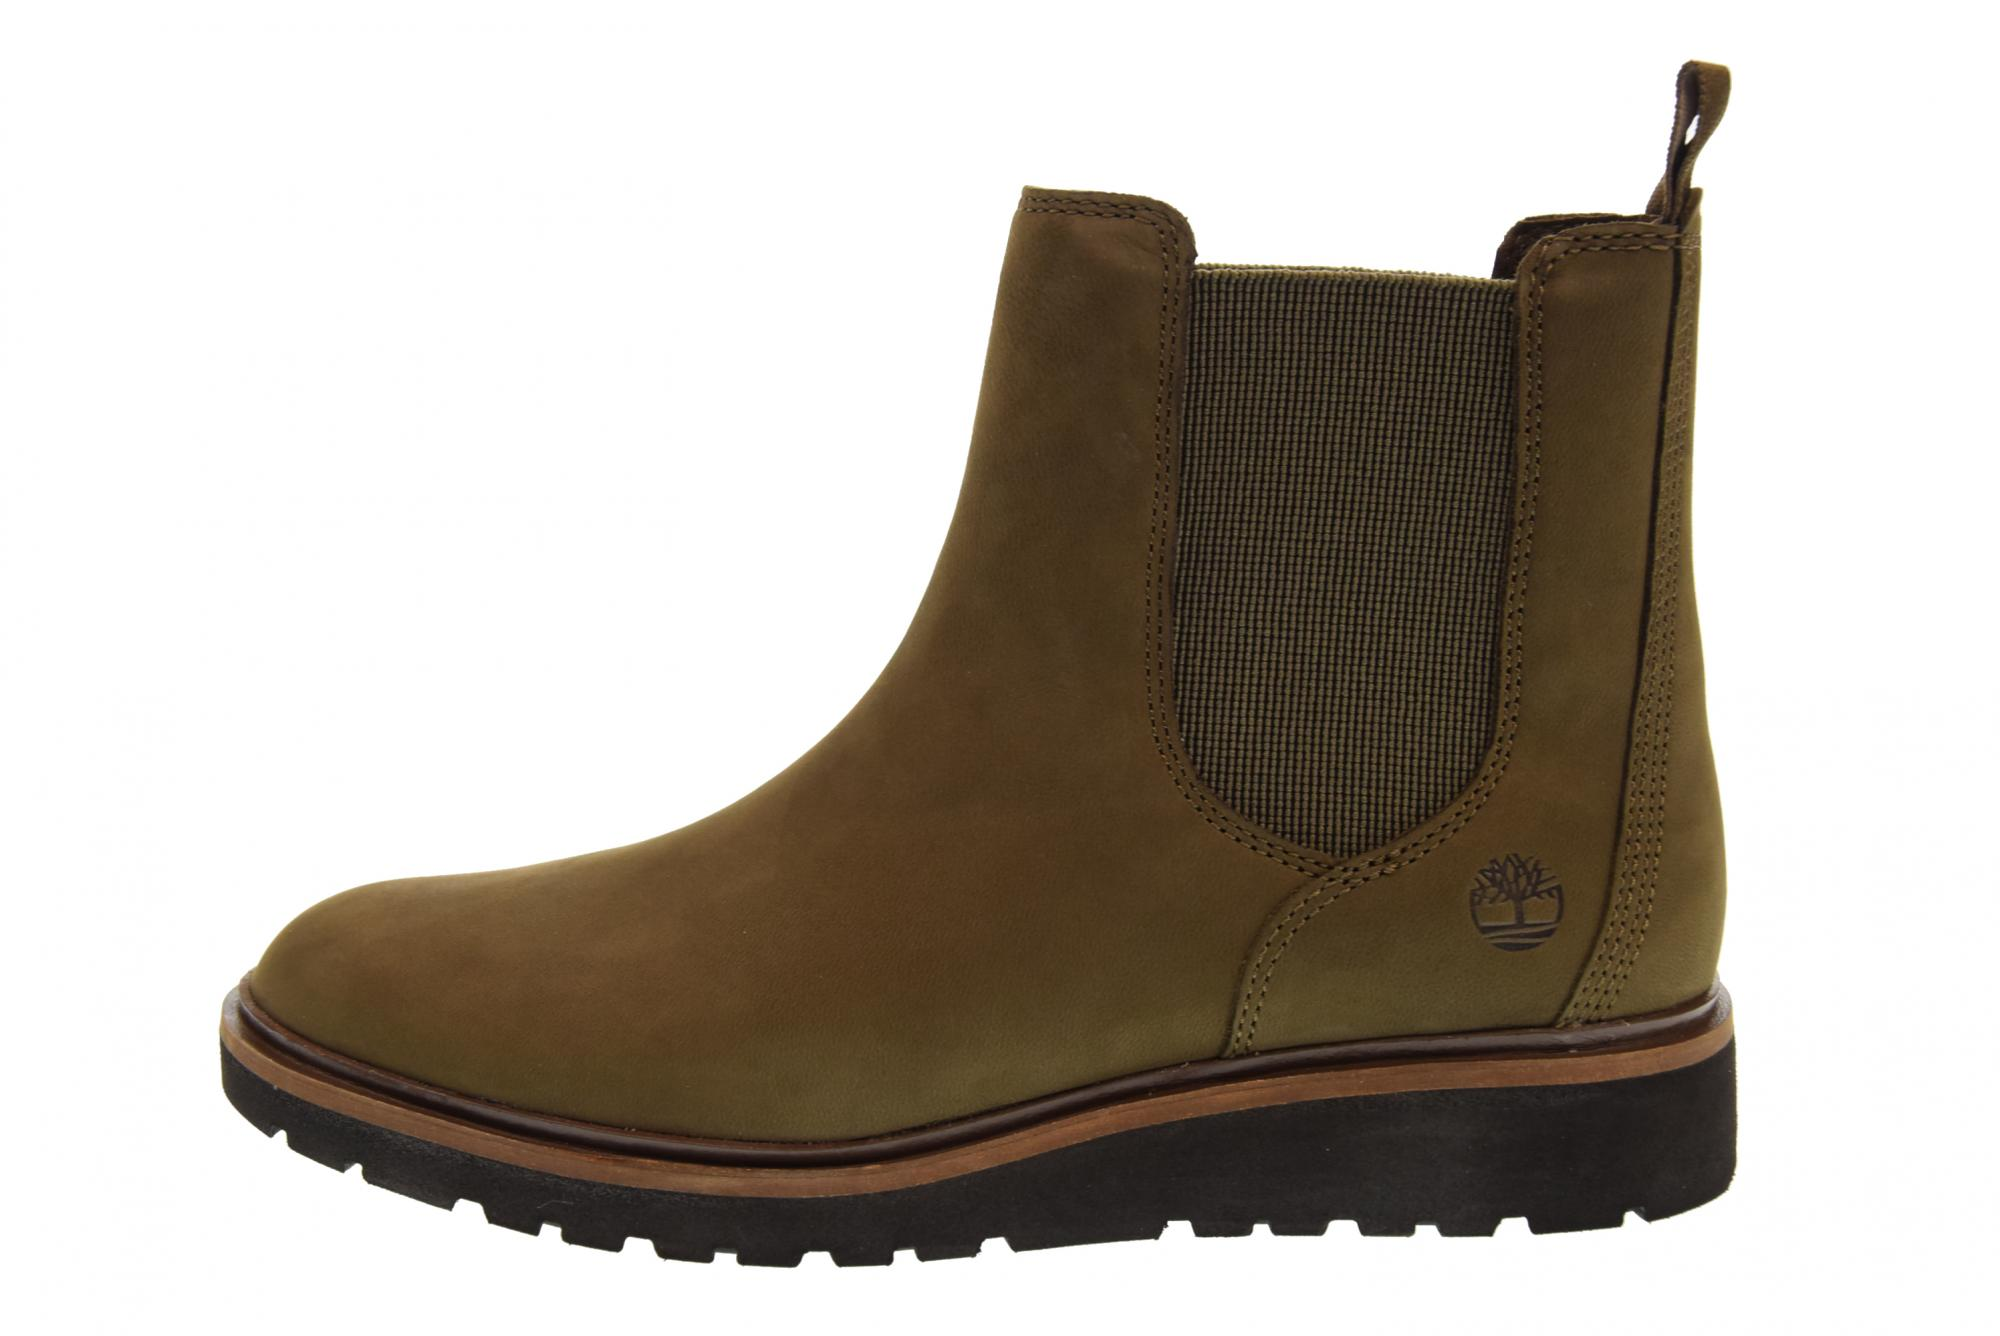 Bottines A18f Timberland Femmes A1rh7 Pour R5wwqPS